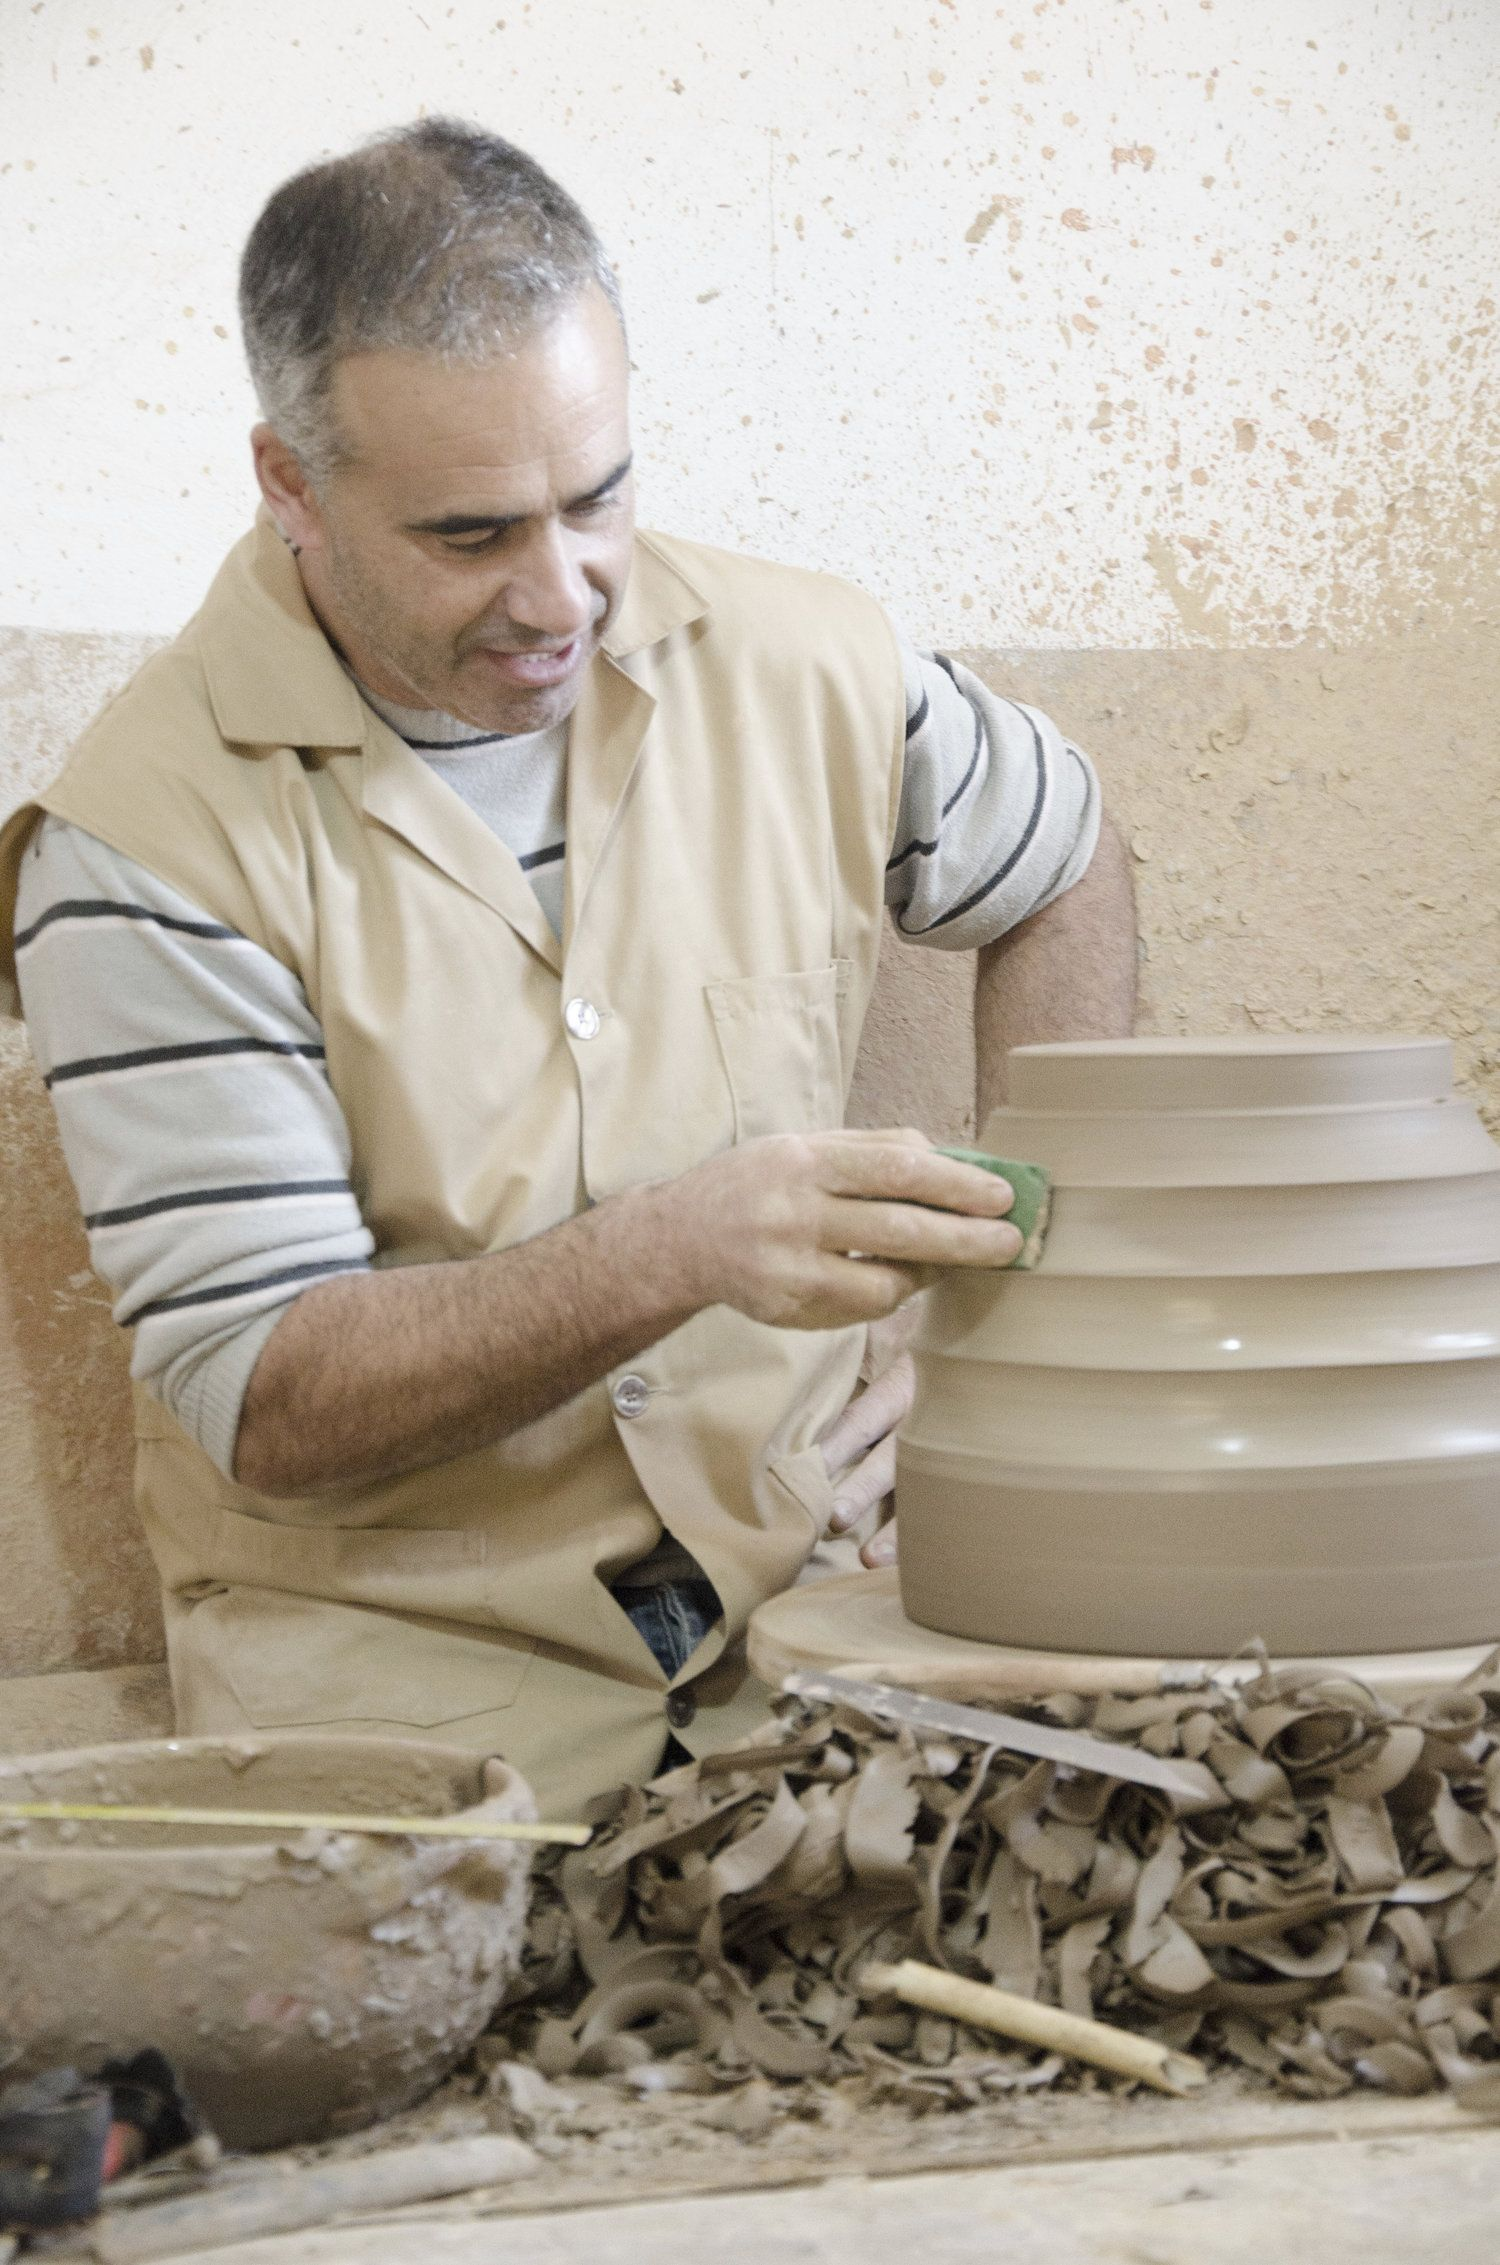 Conventional clay pots made by hand by Rui, the Portugese ceramist. For Cactus Copenhagen